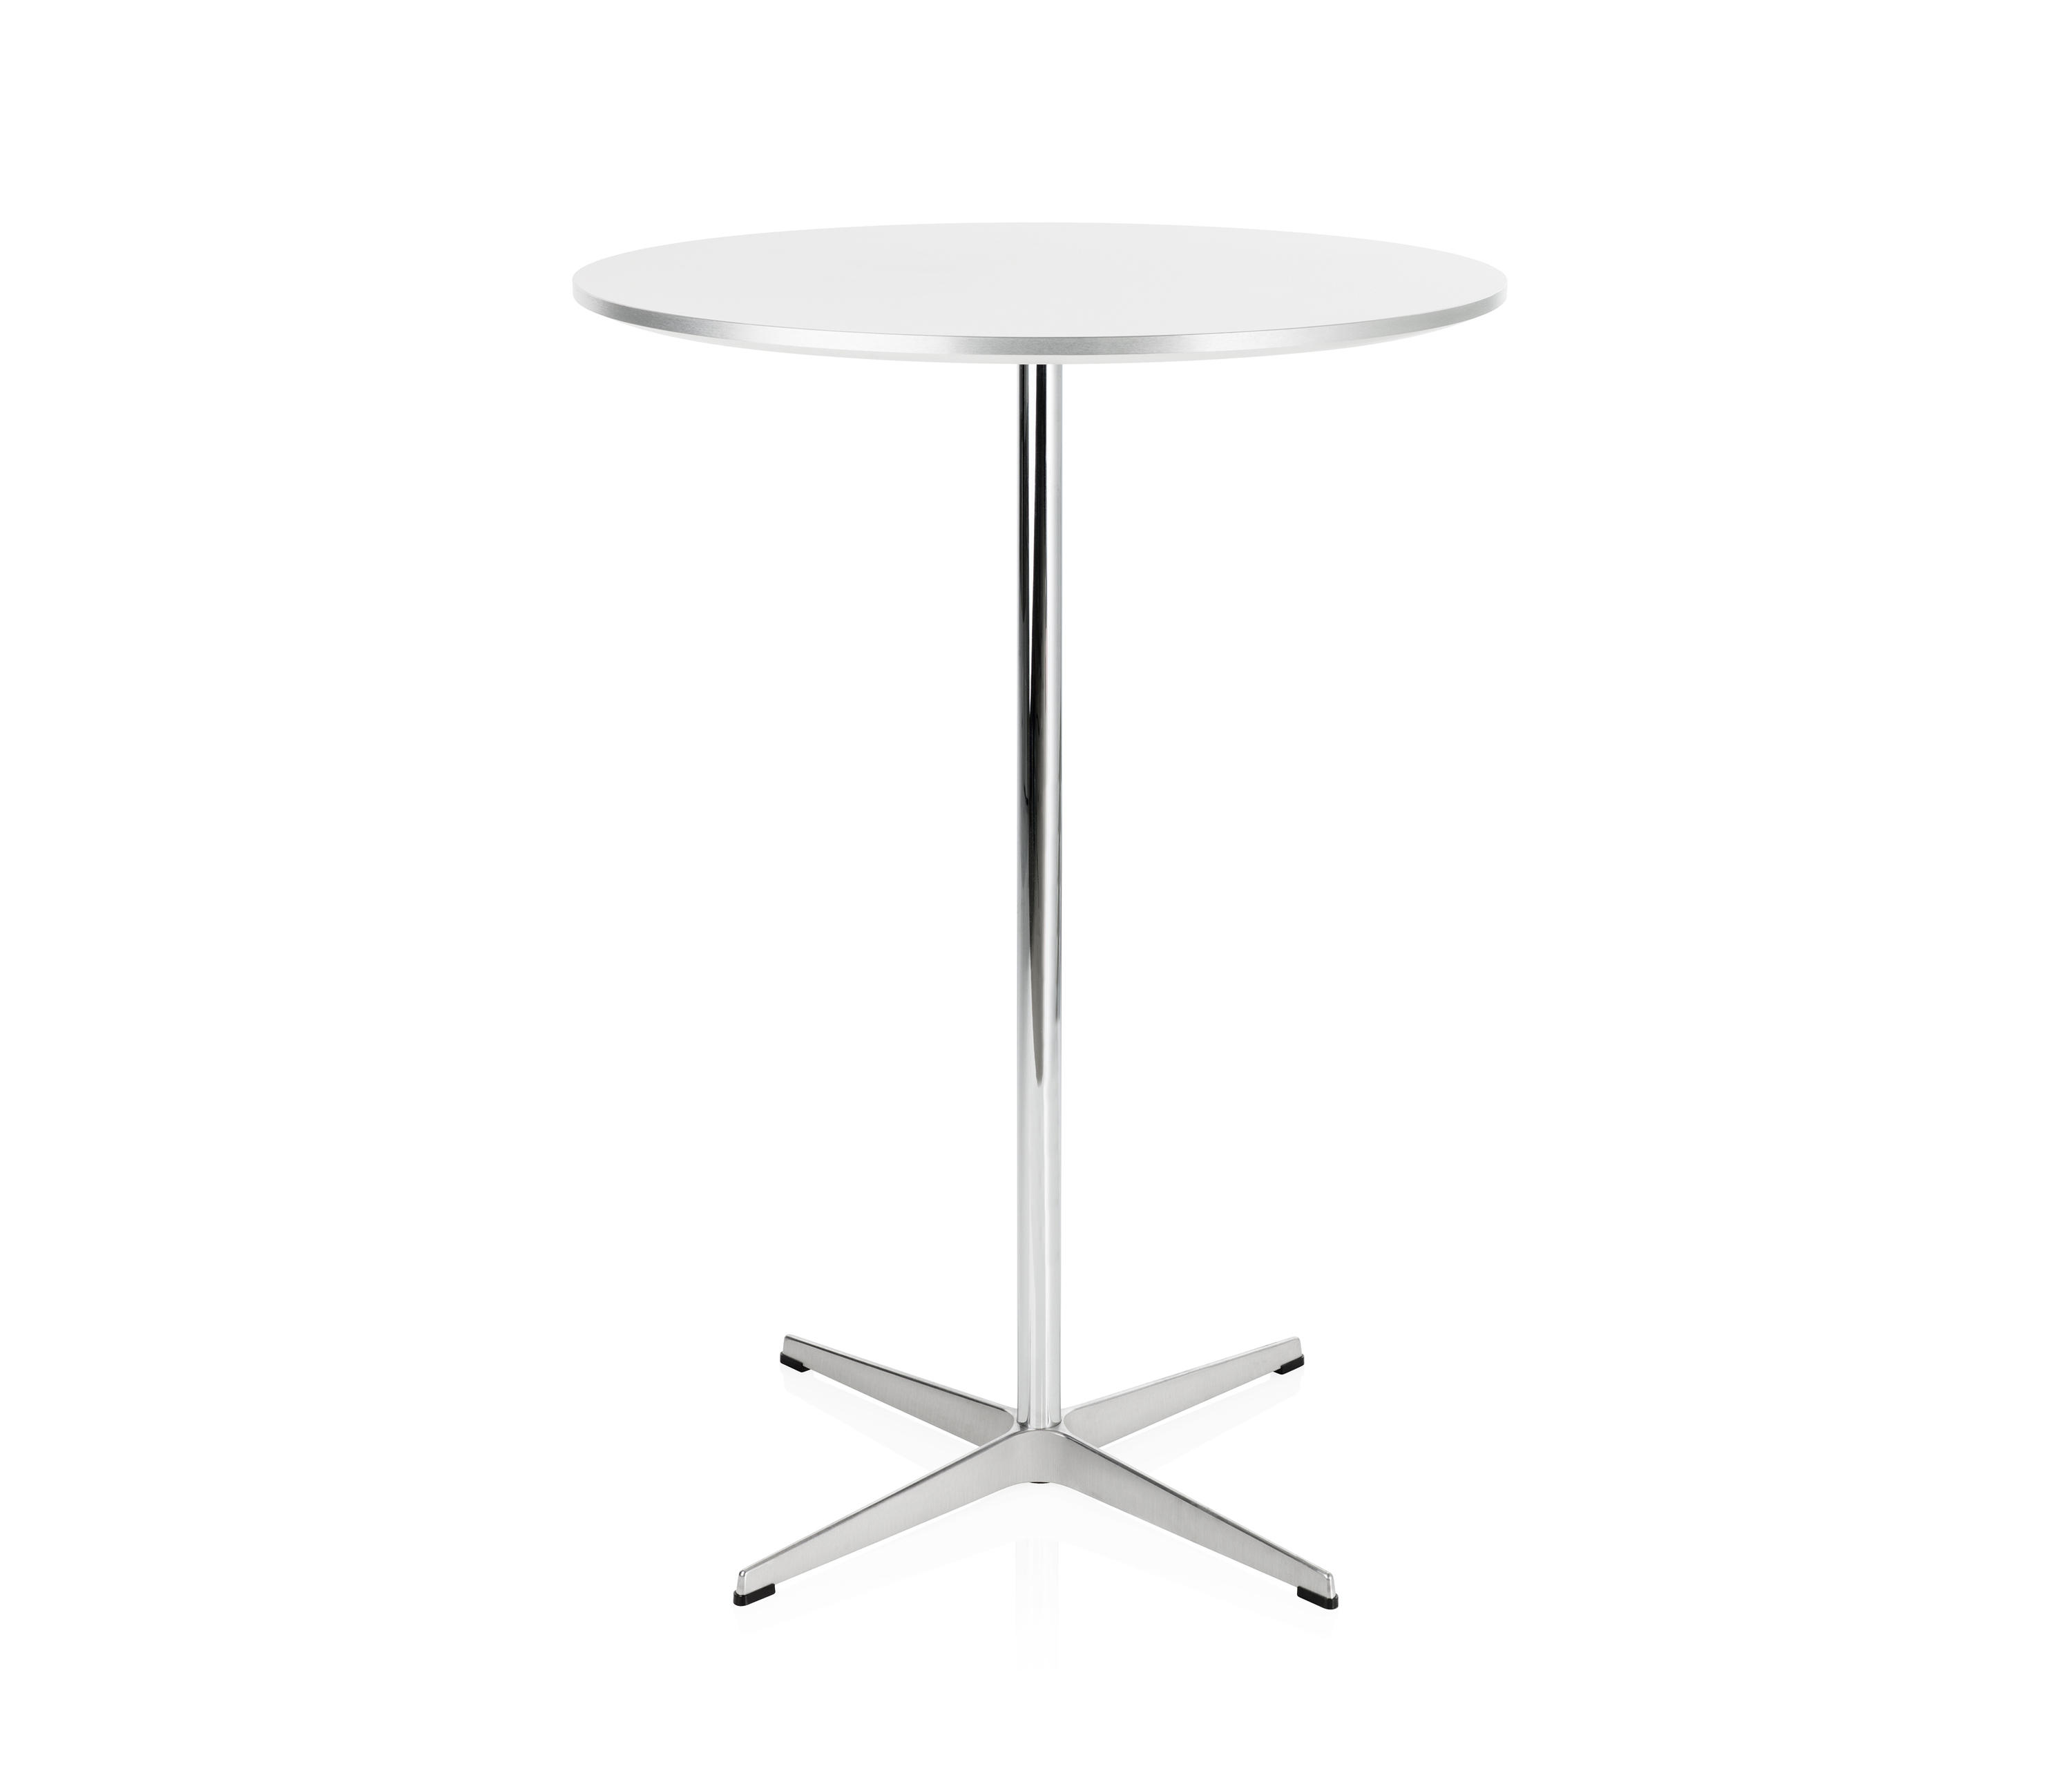 Bar Table A922 Stehtische Von Fritz Hansen Architonic